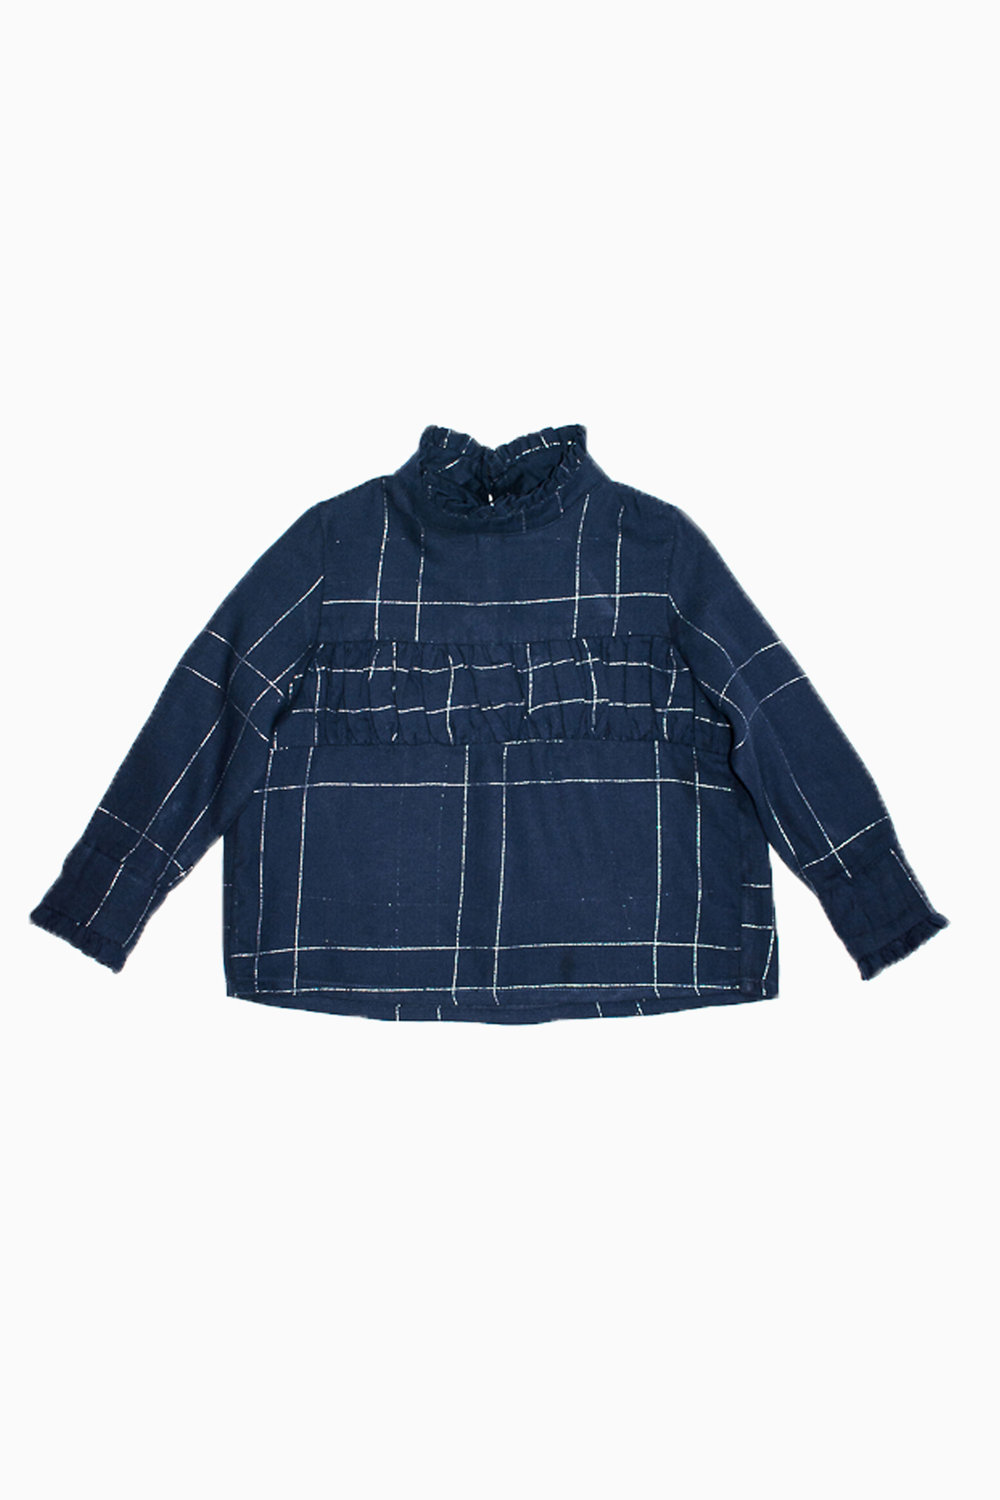 navy silver squared Lydia blouse